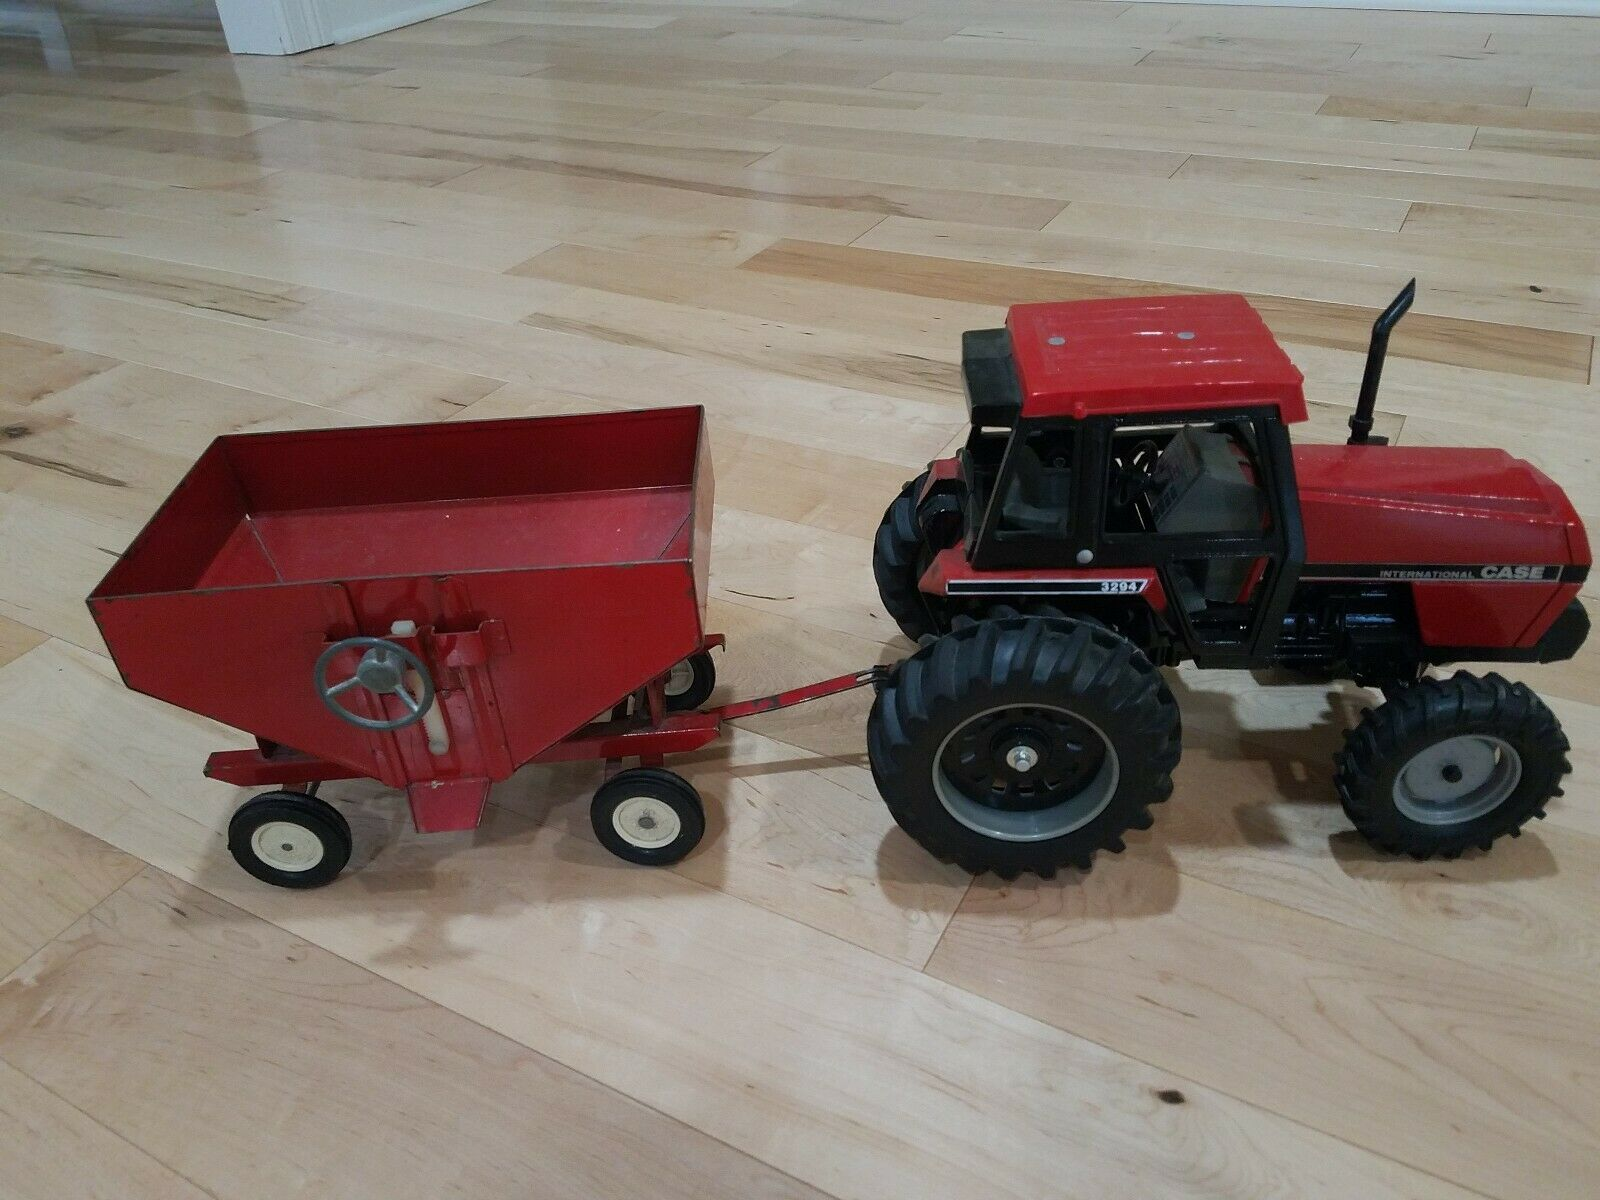 CASE INTERNATIONAL IH ERTL 3294 TRACTOR FRONT ASSIST rot GRAVITY WAGON TOY